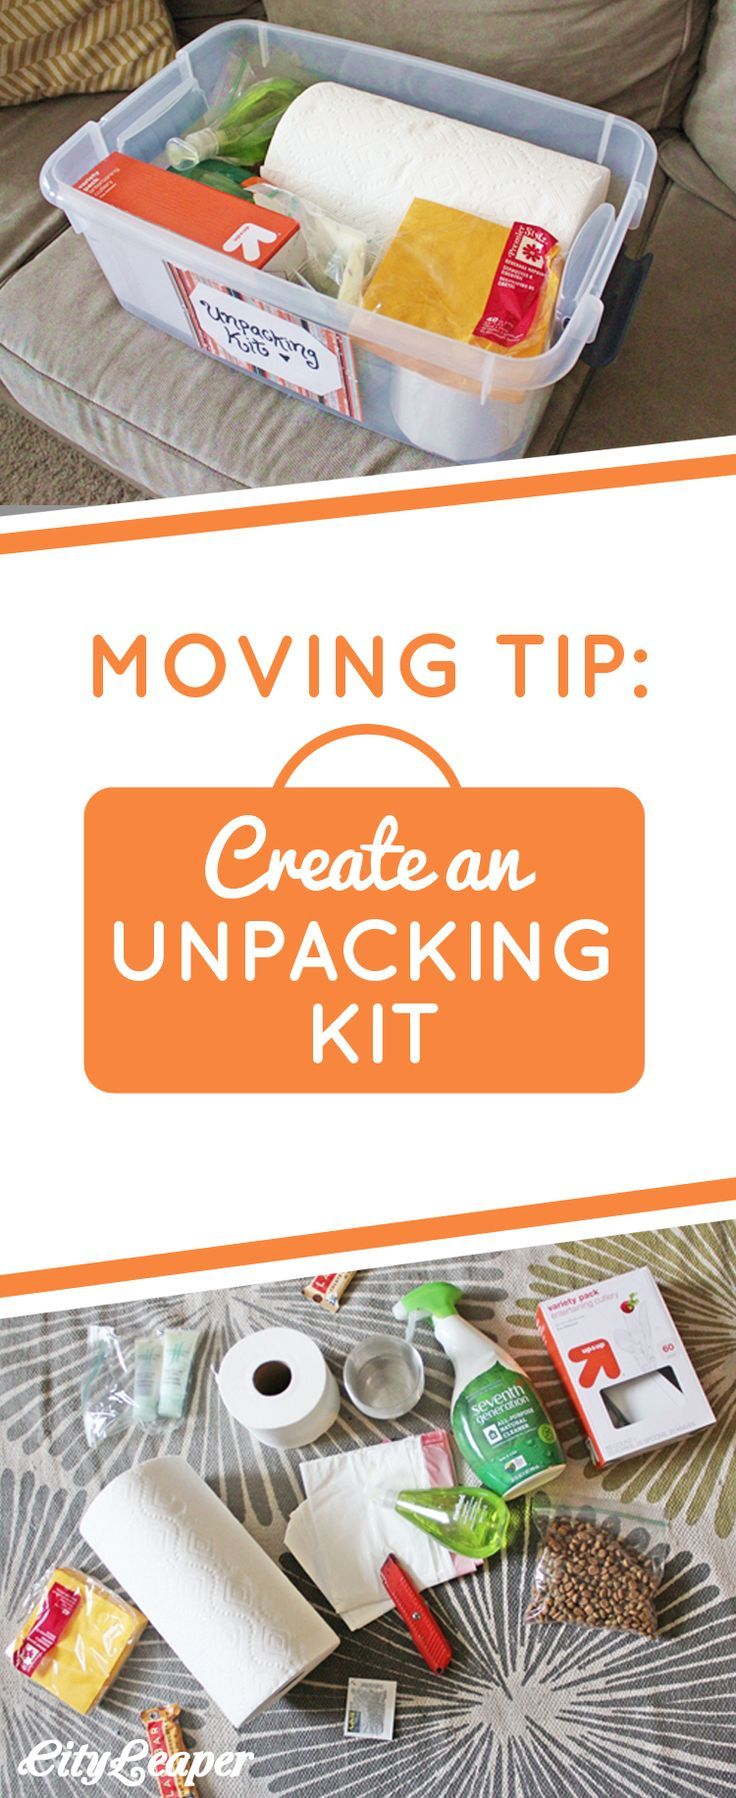 After moving multiple times and not following this tip, I quickly realized the importance of prepping a box of essentials to get through that first day or two.